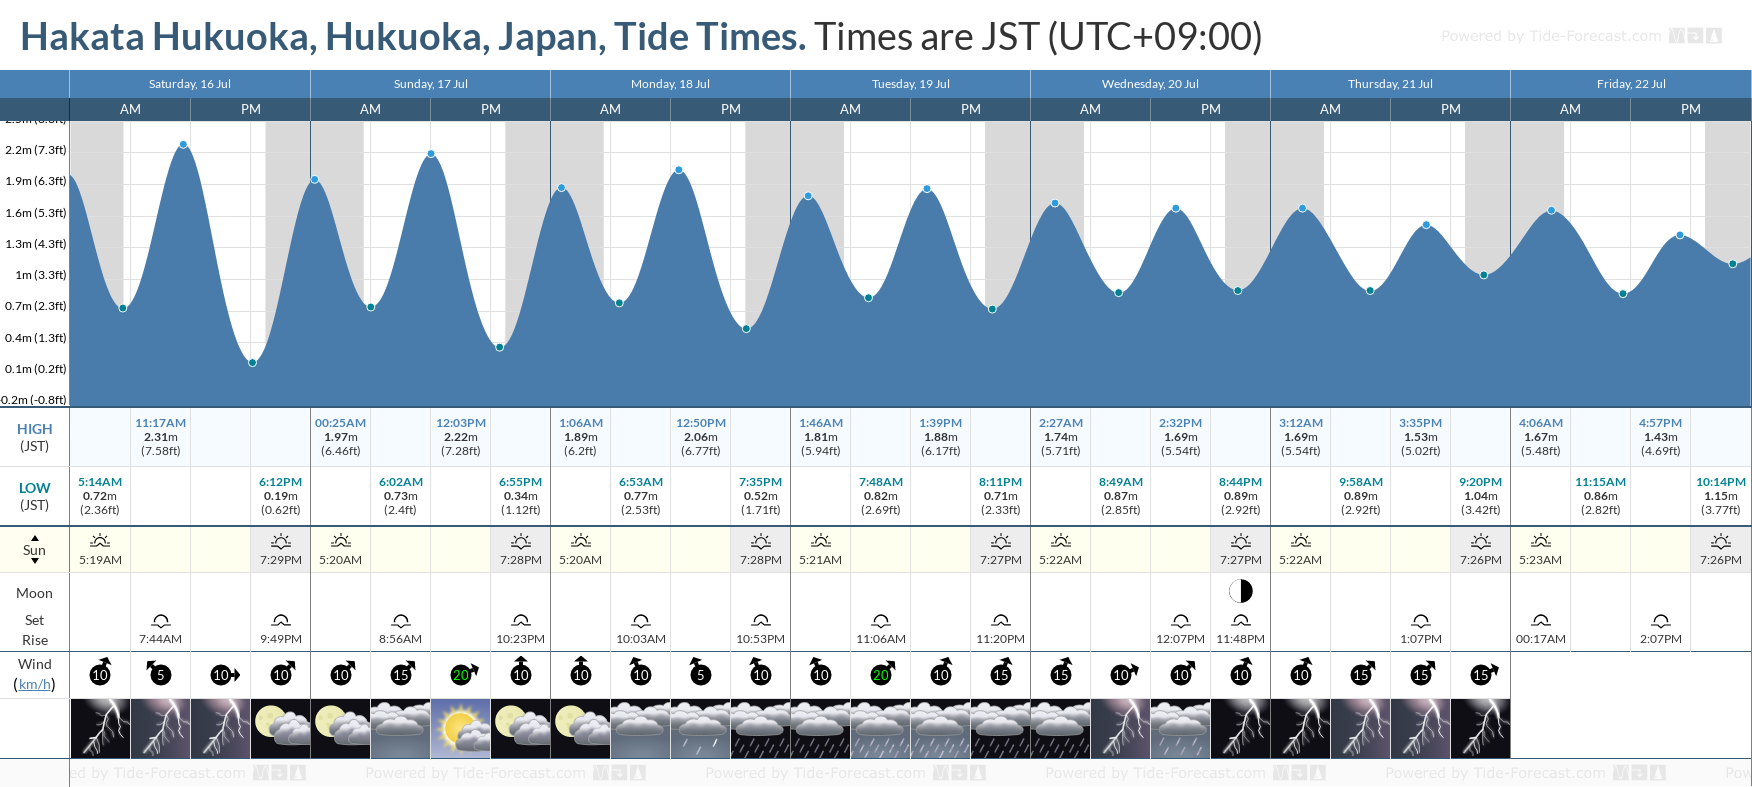 Hakata Hukuoka, Hukuoka, Japan Tide Chart including high and low tide tide times for the next 7 days